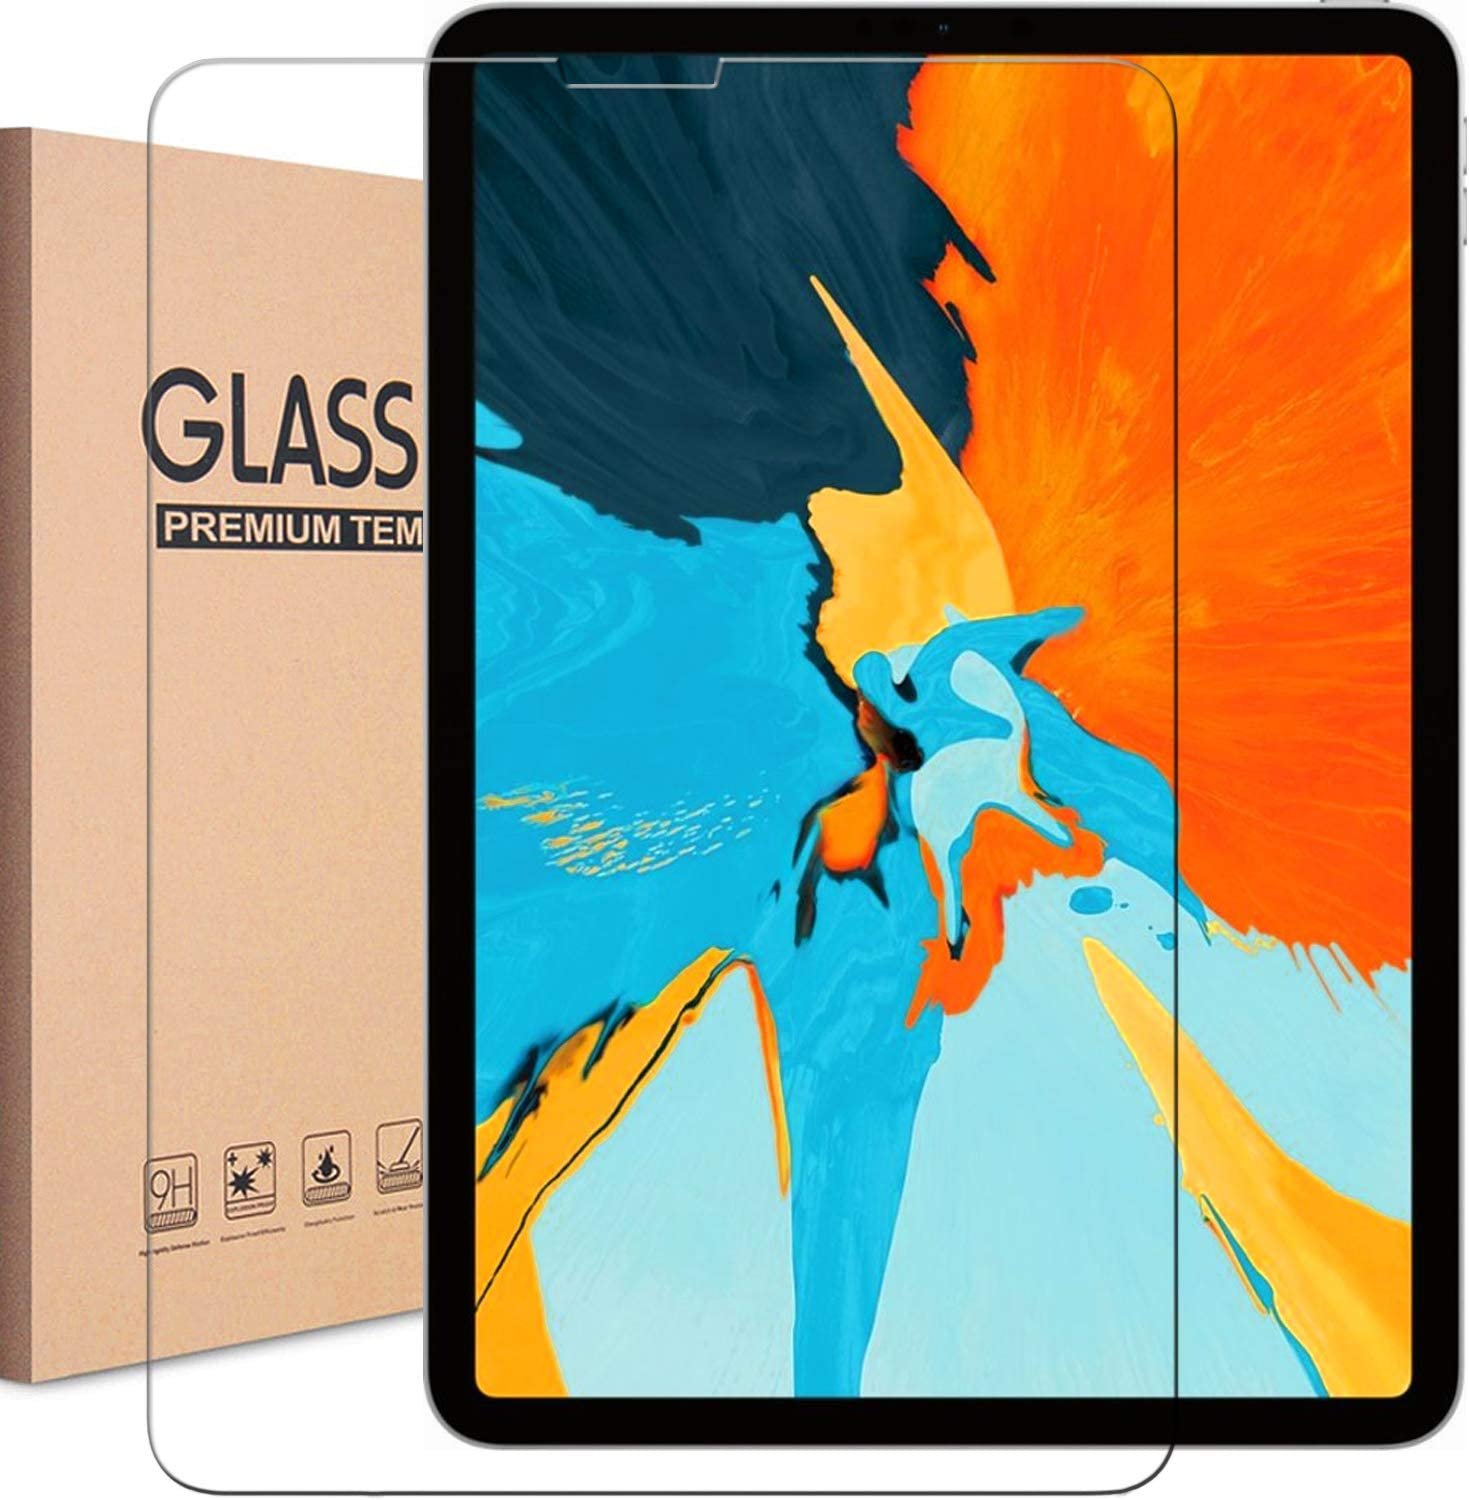 iPad Pro 11 1st/2nd Gen Screen Protector, KIQ Tempered Glass Protective Screen Self-Adhere Bubble-Free Cover For Apple iPad Pro 11-inch (2018/2020) 1st 2nd Generation